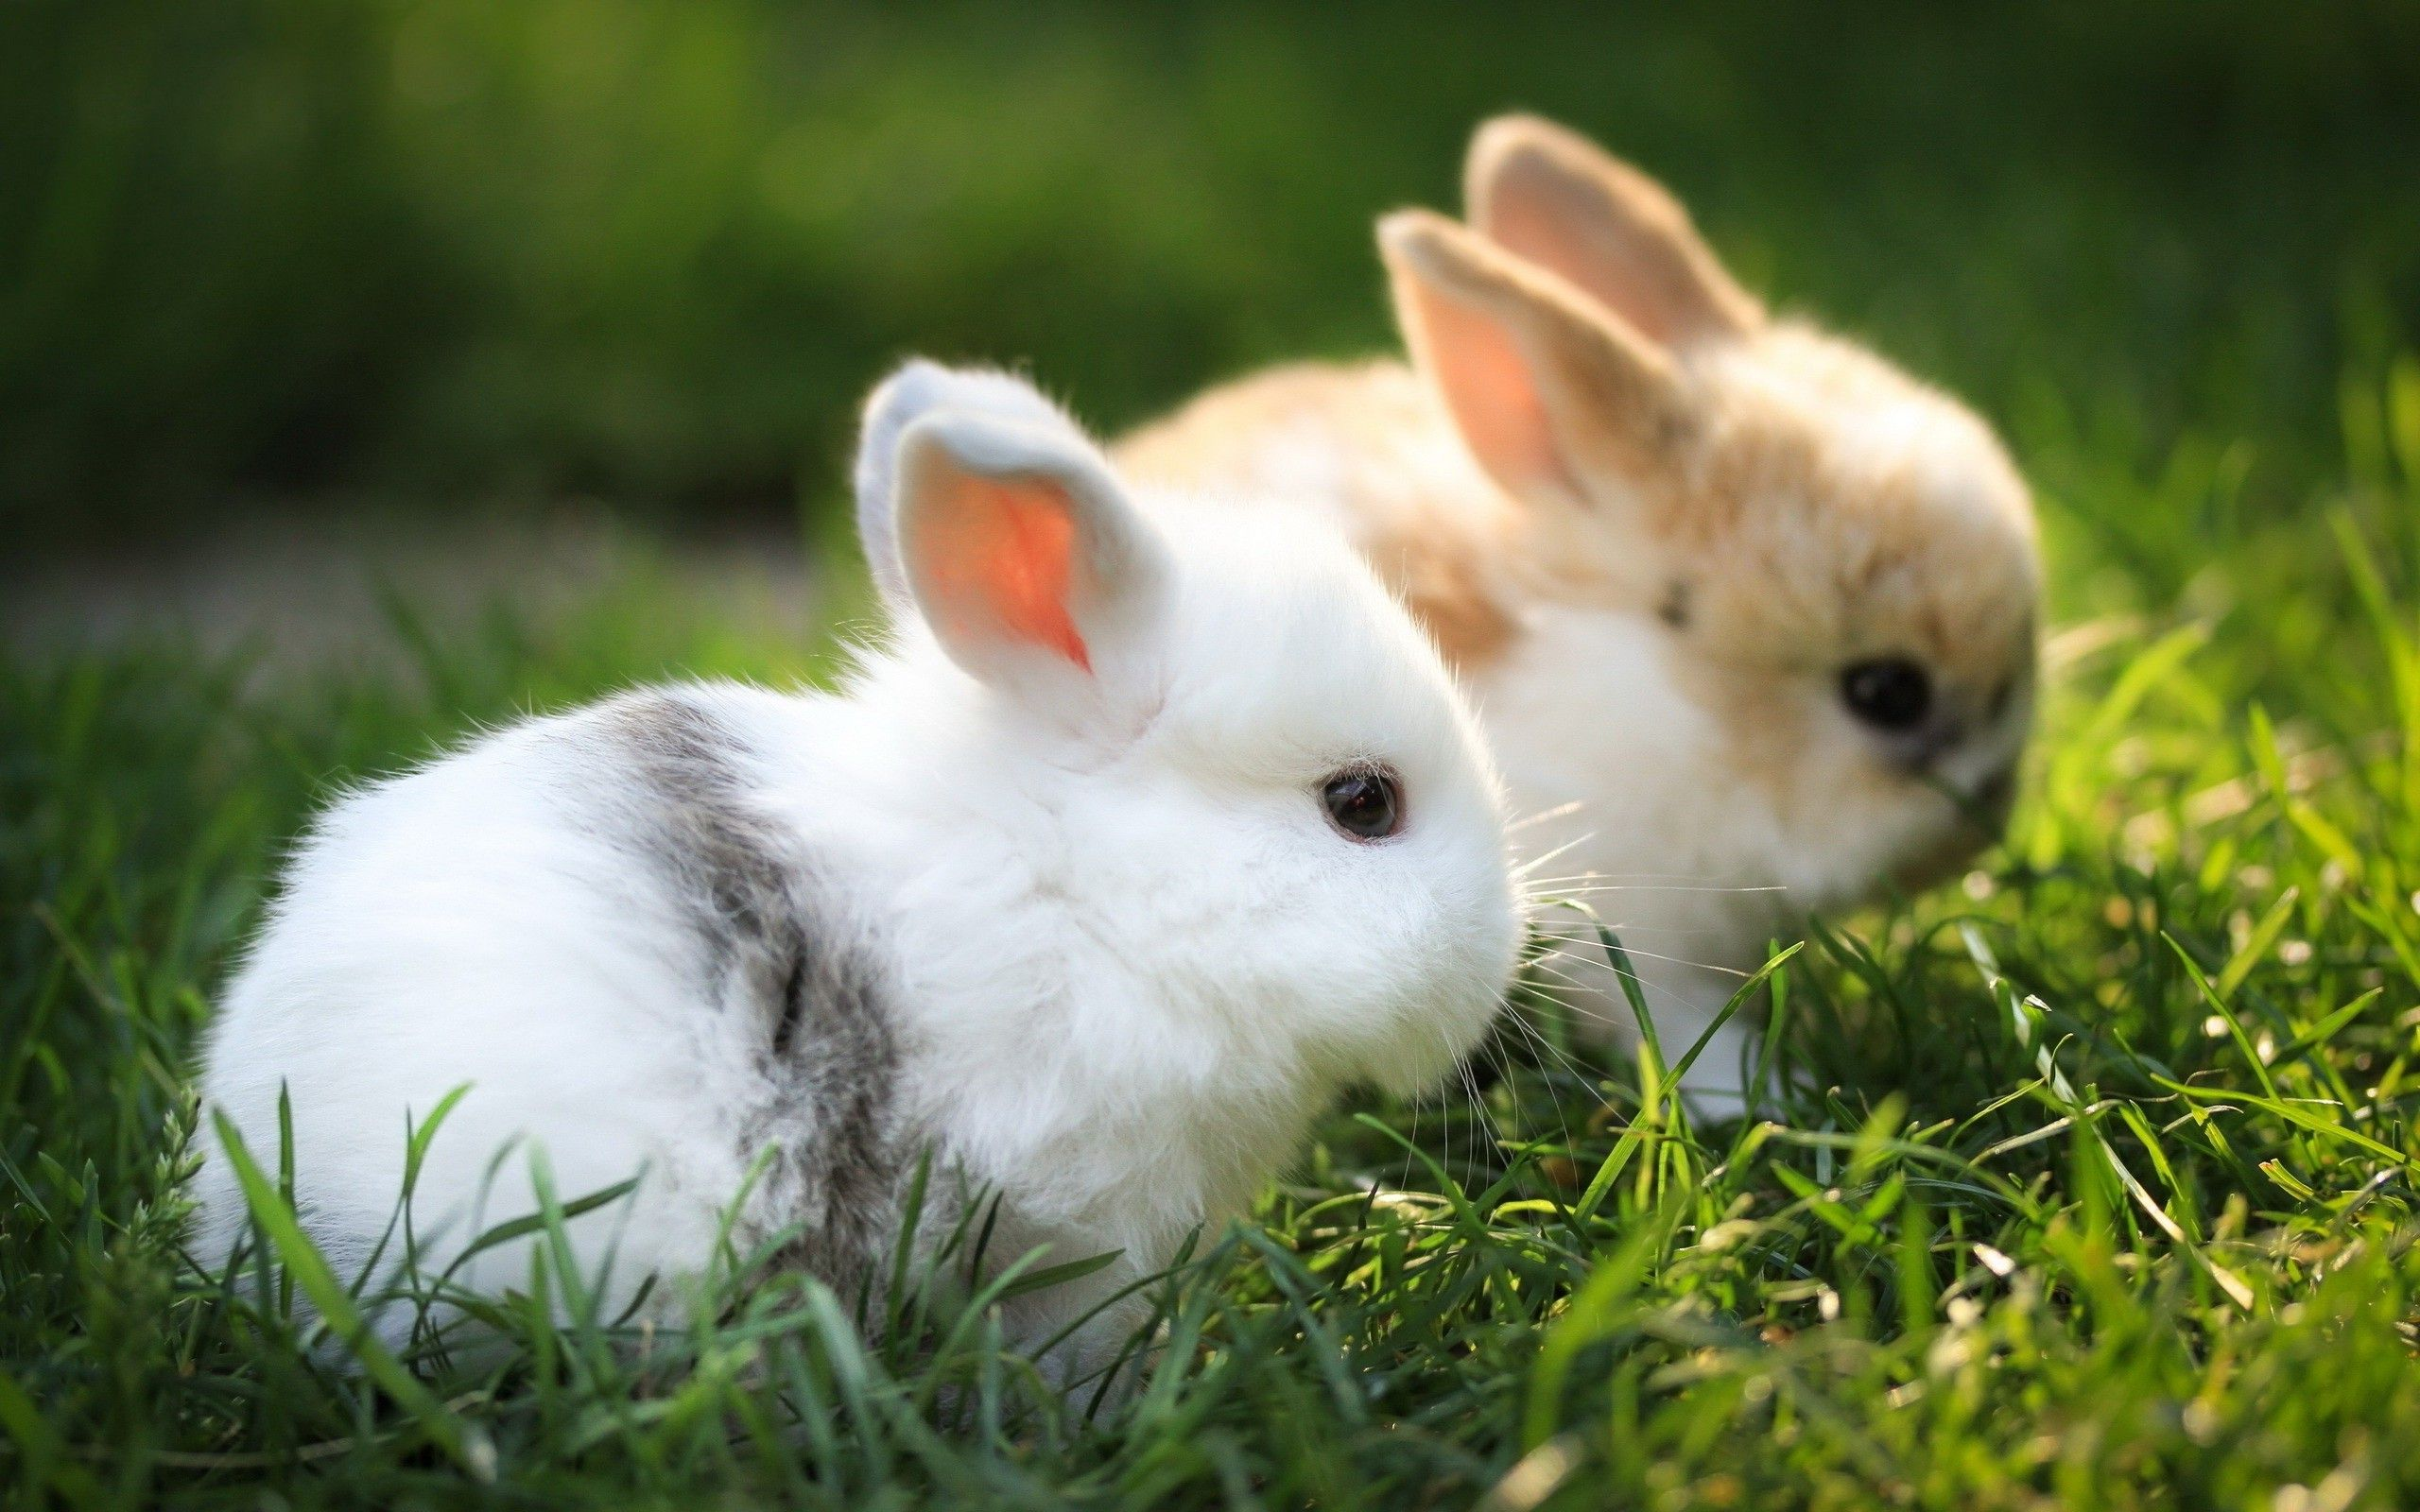 Rabbit Wallpapers HD Backgrounds Images Pics Photos 2560x1600